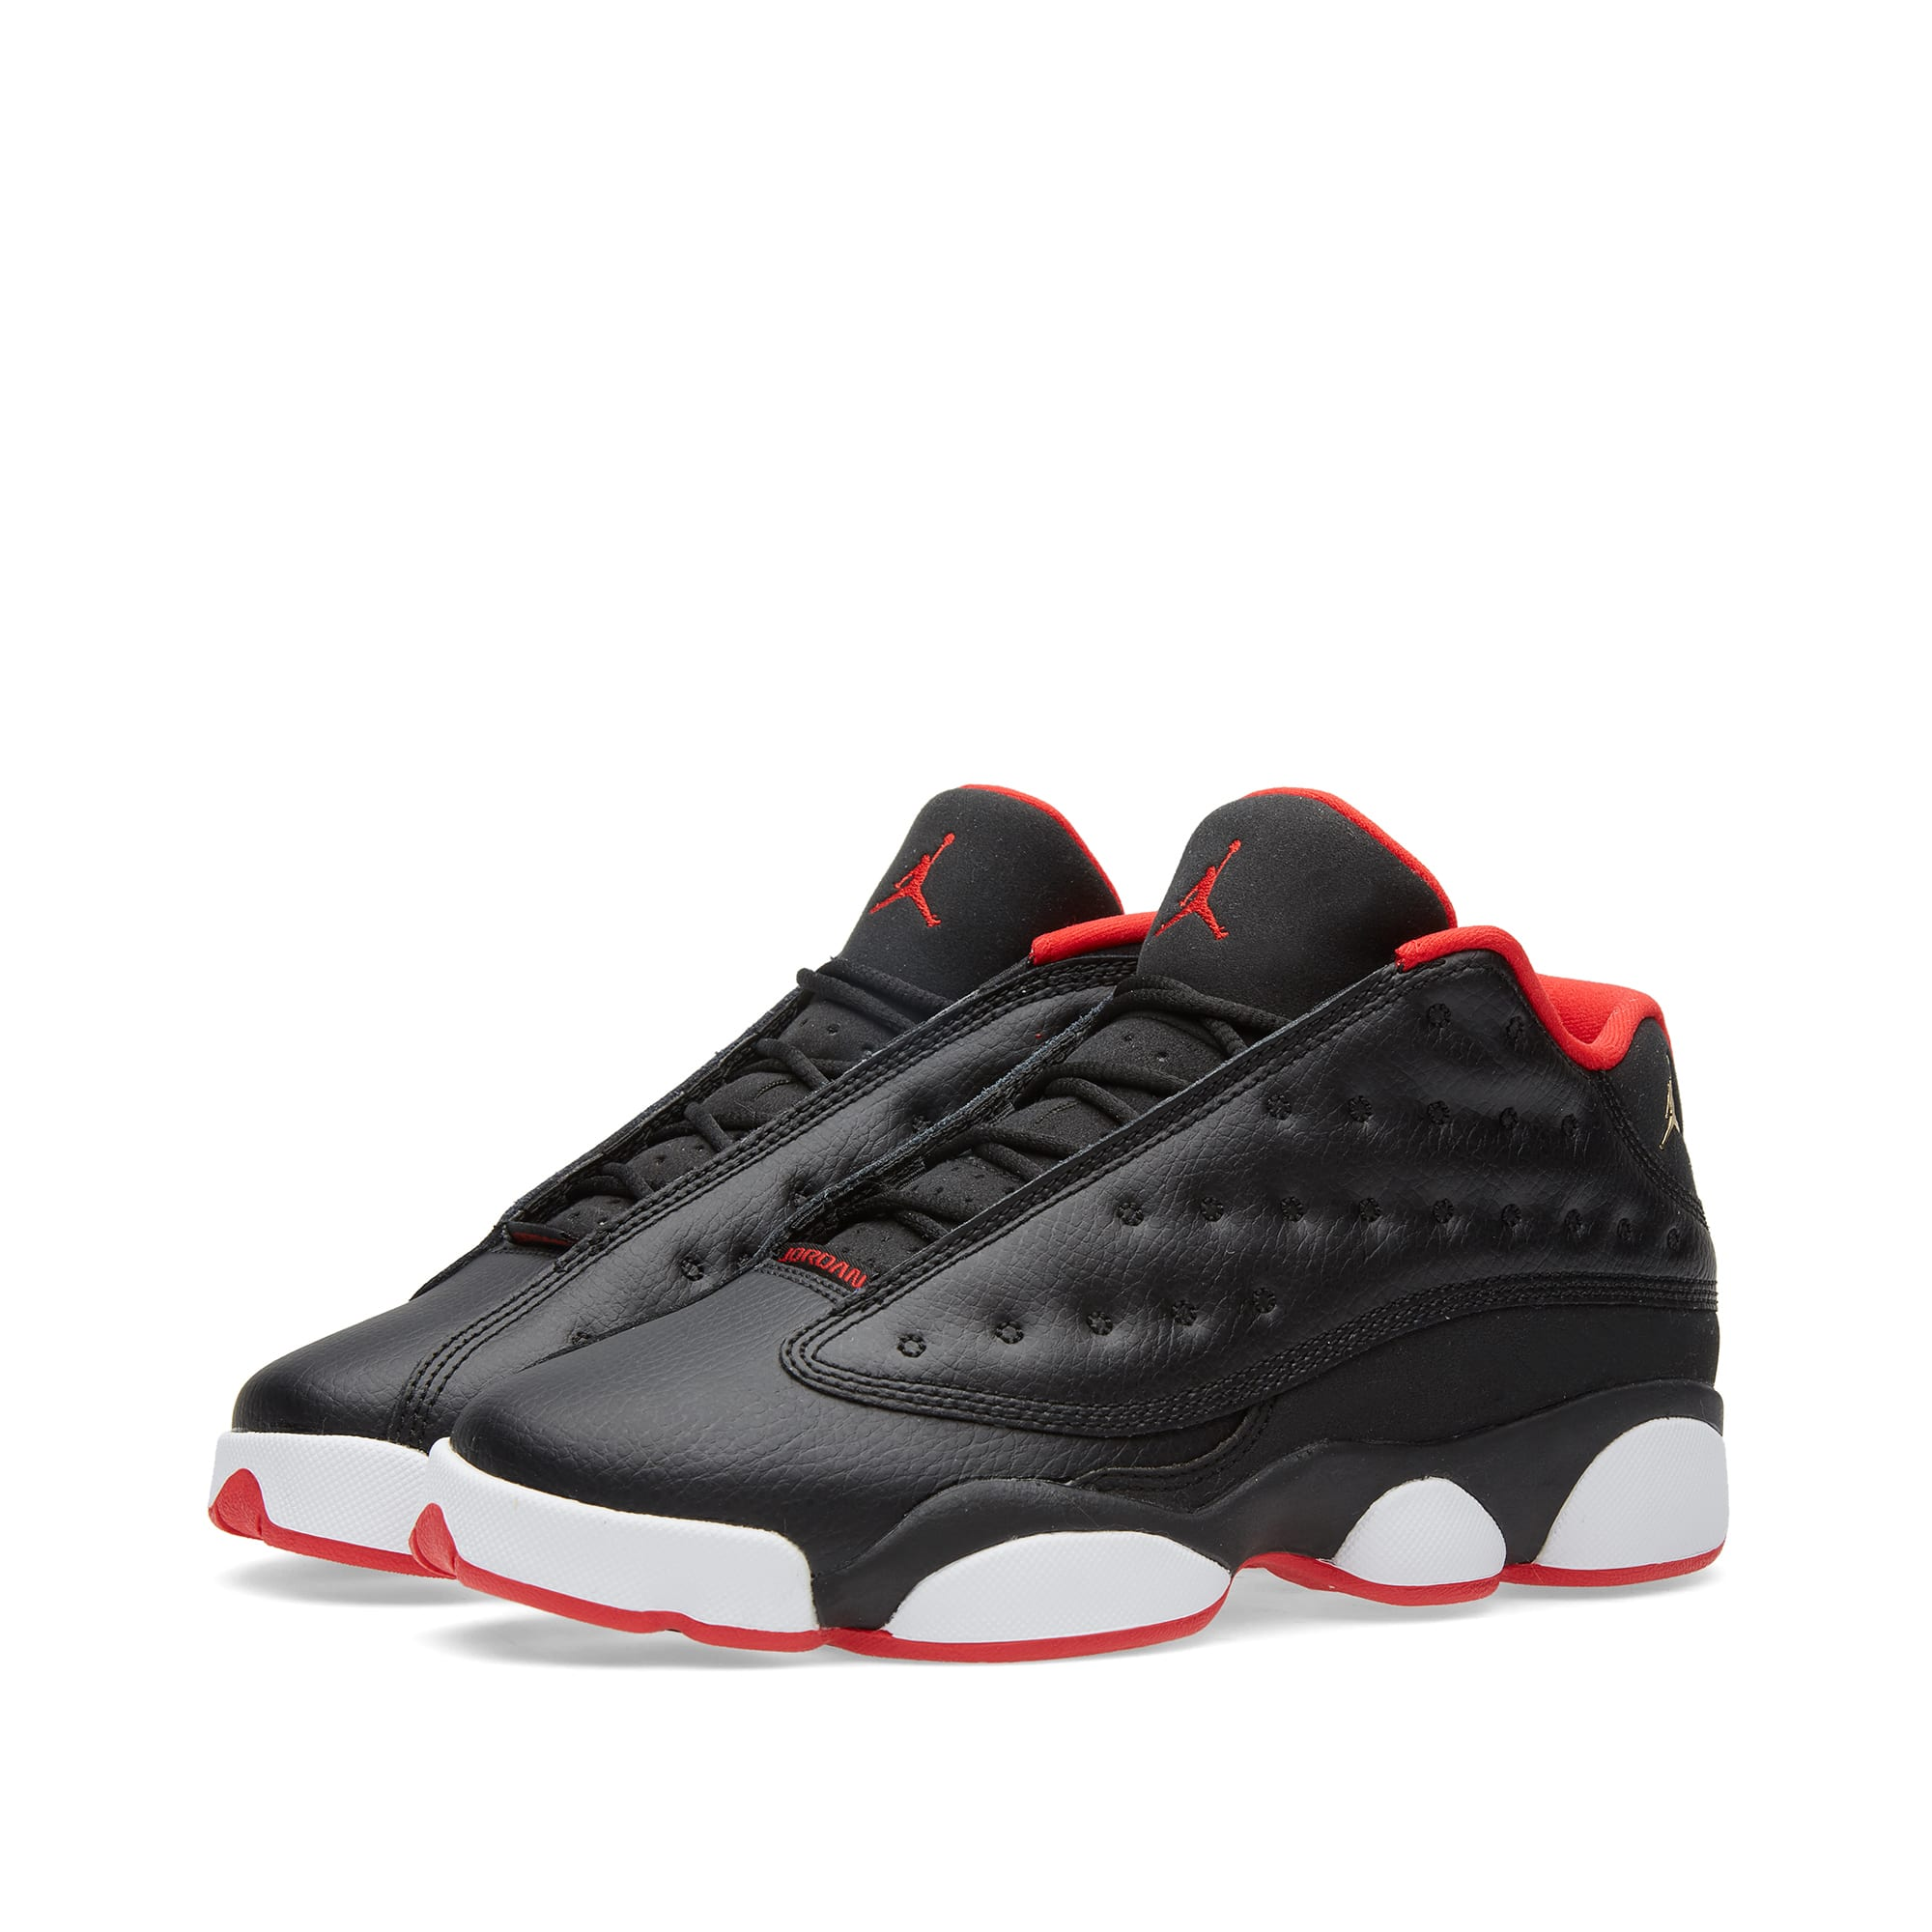 pretty nice 67856 2d57d Nike Air Jordan XIII Retro Low BG  Bred  Black   University Red   END.